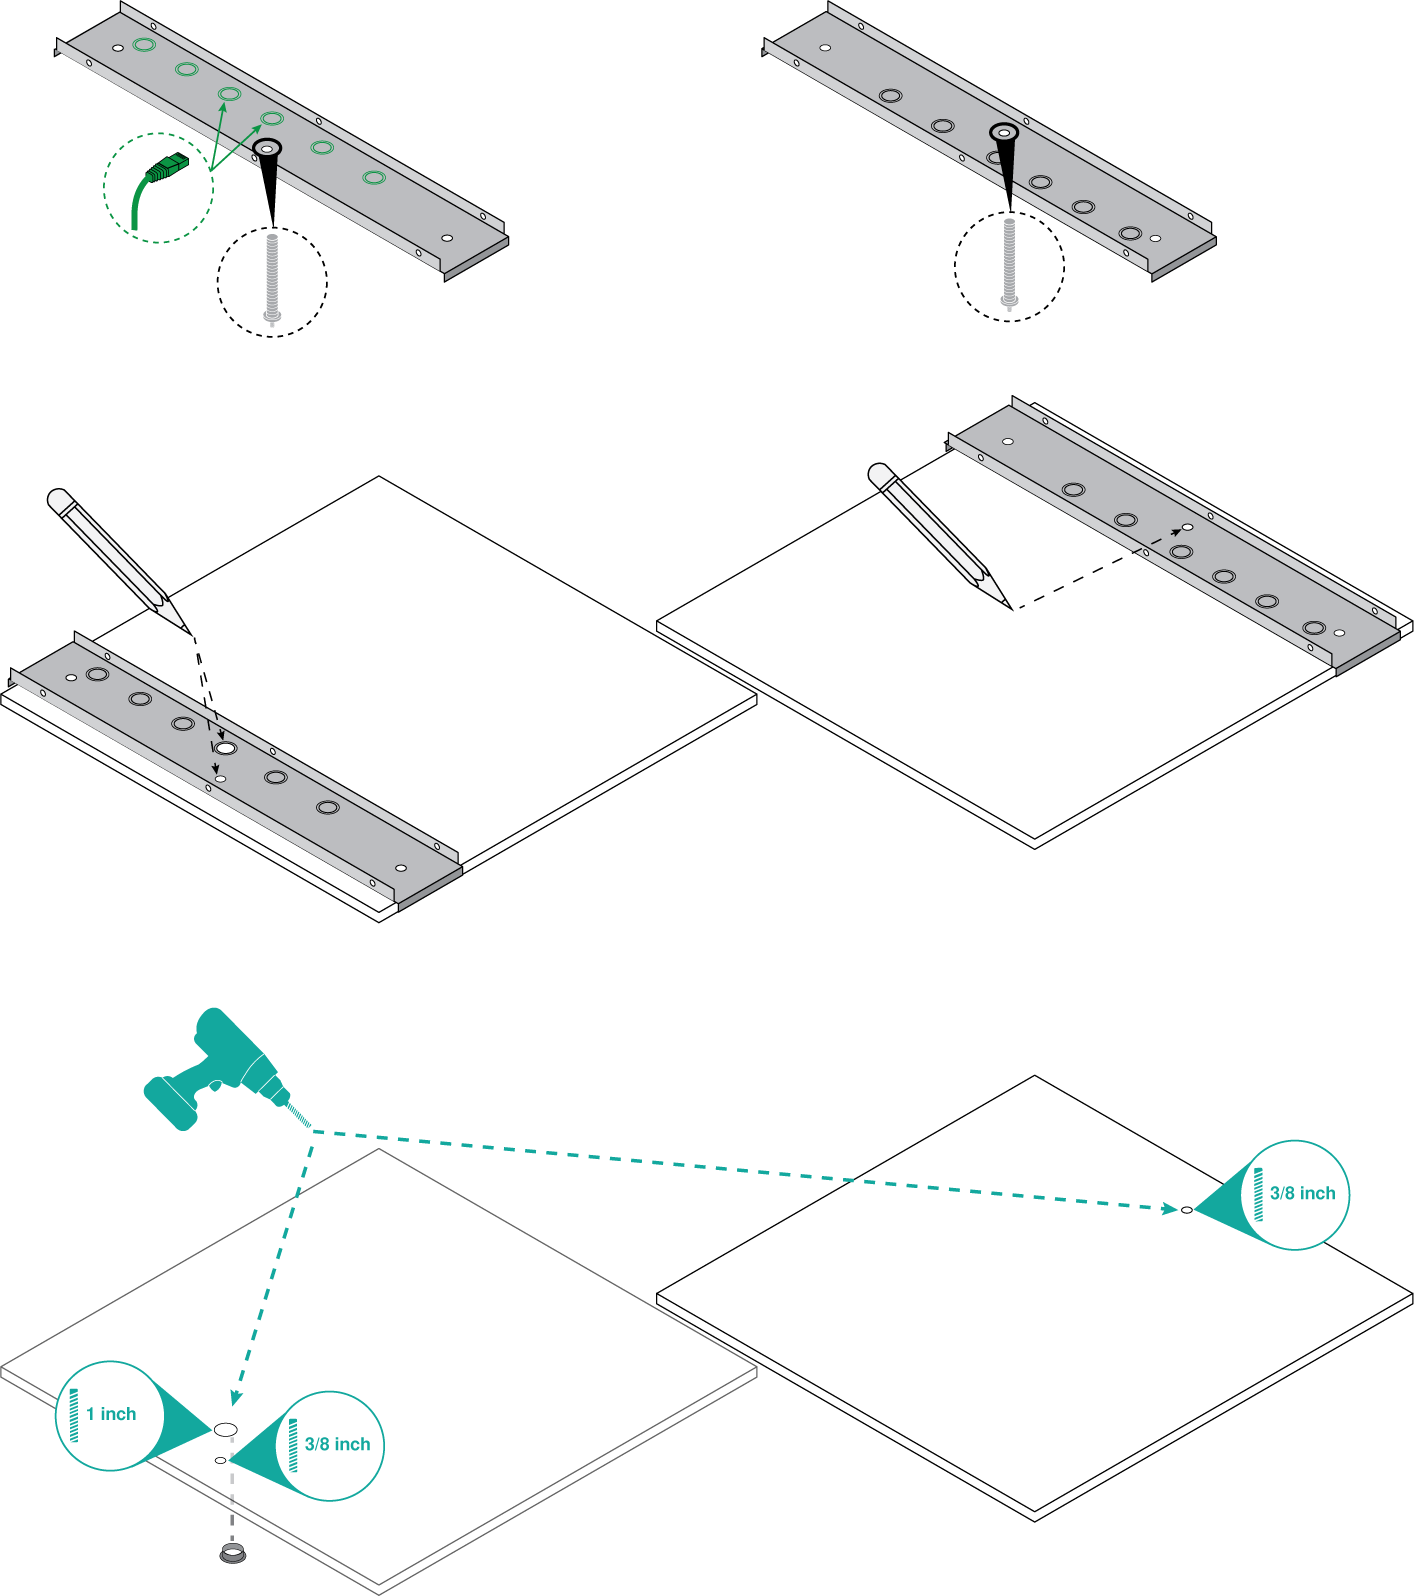 Illustration showing how to place 2 A710-TBs on ceiling tiles and drill holes for the mounting bolts and Ethernet cable.